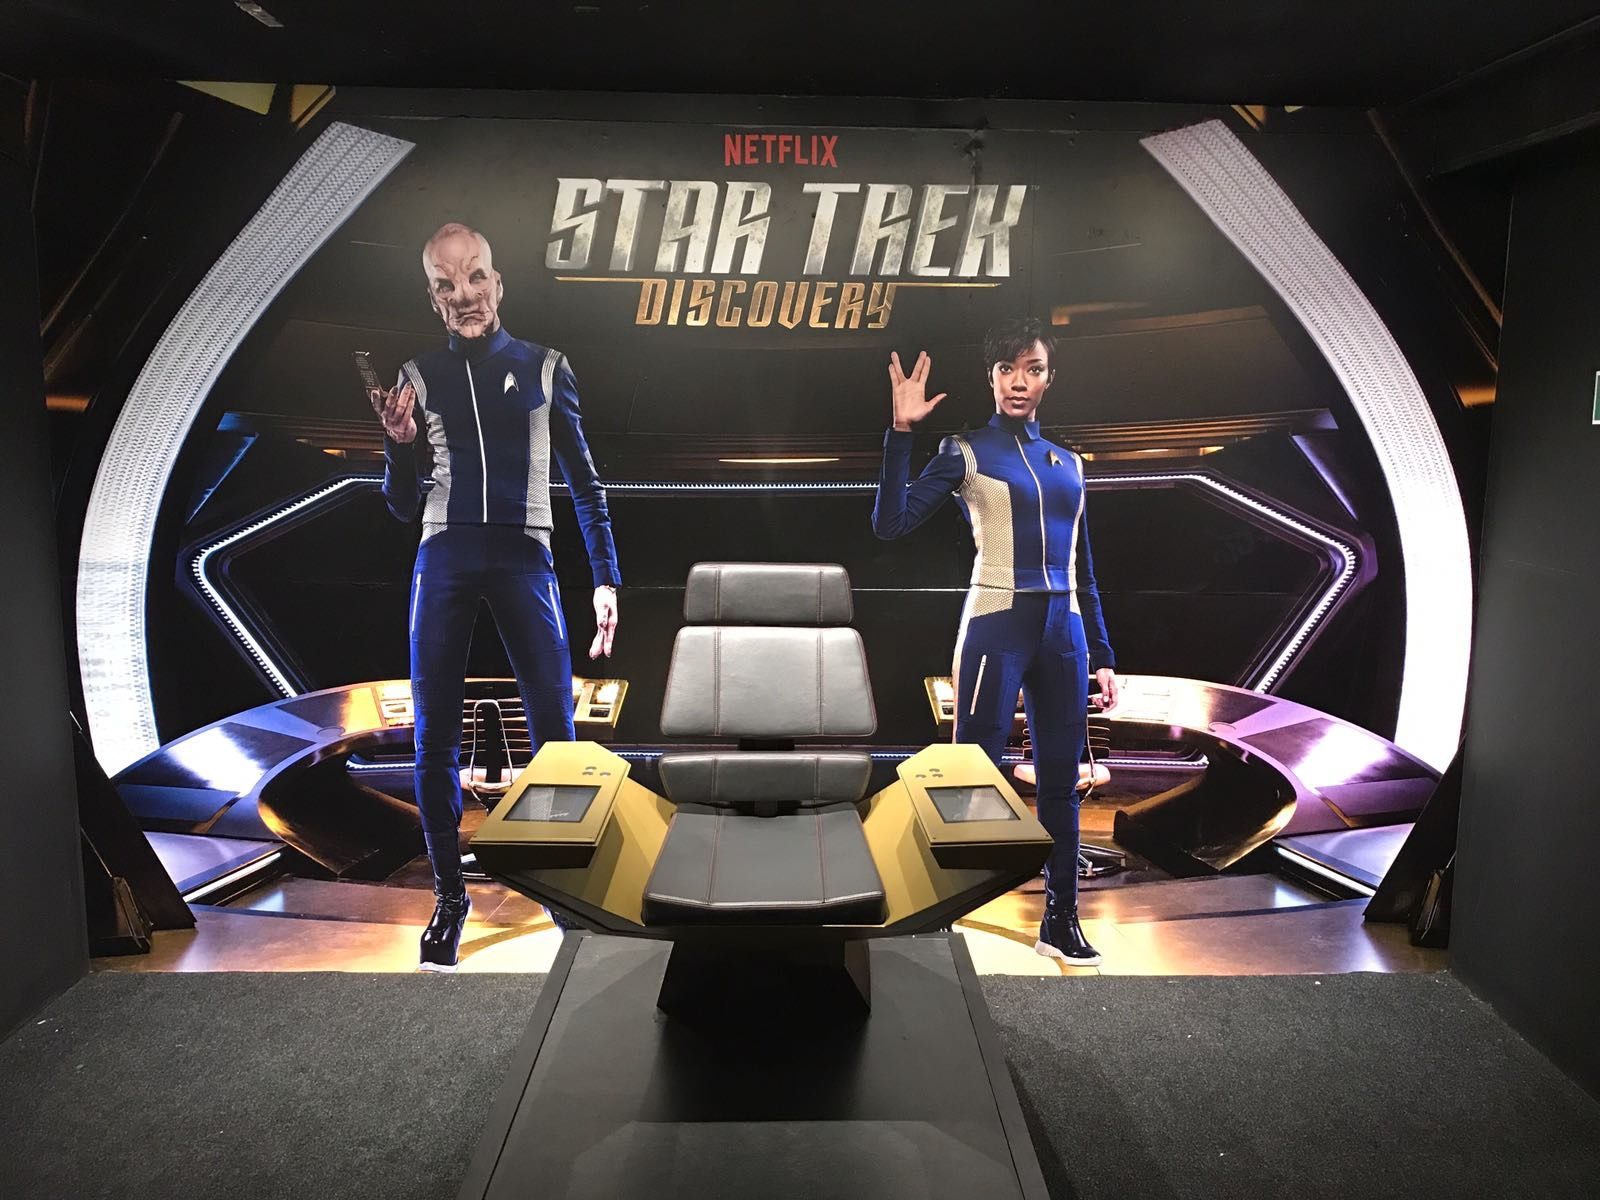 Netflix Star Trek Wall Coverings Murals Links Signs and Graphics